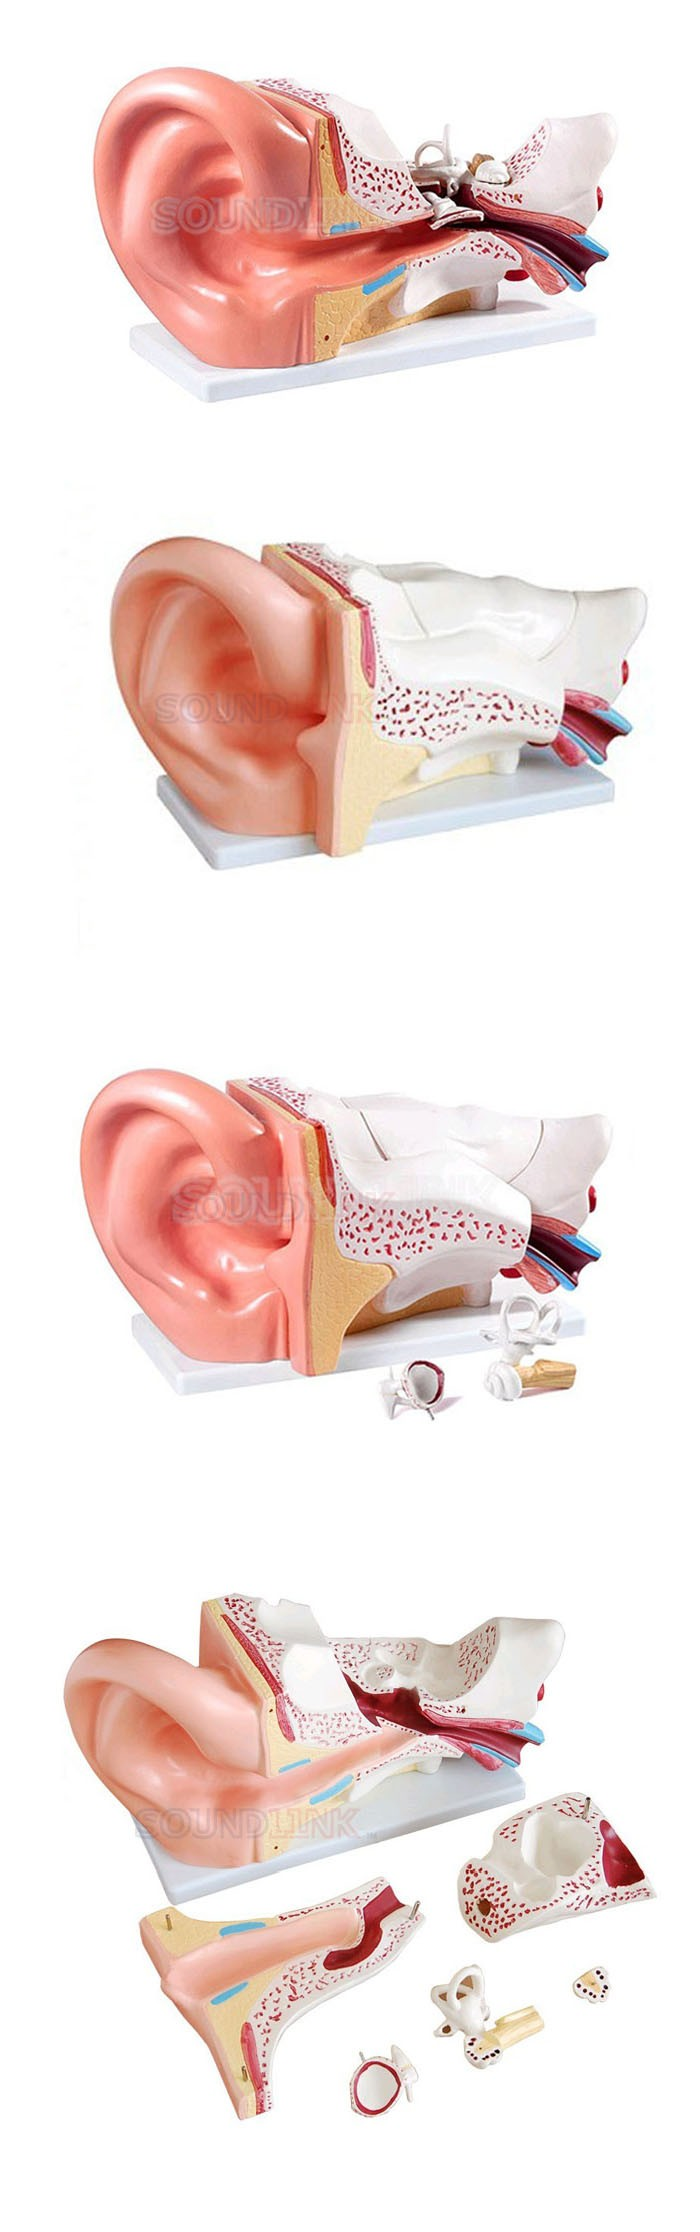 Ear Anatomic Model